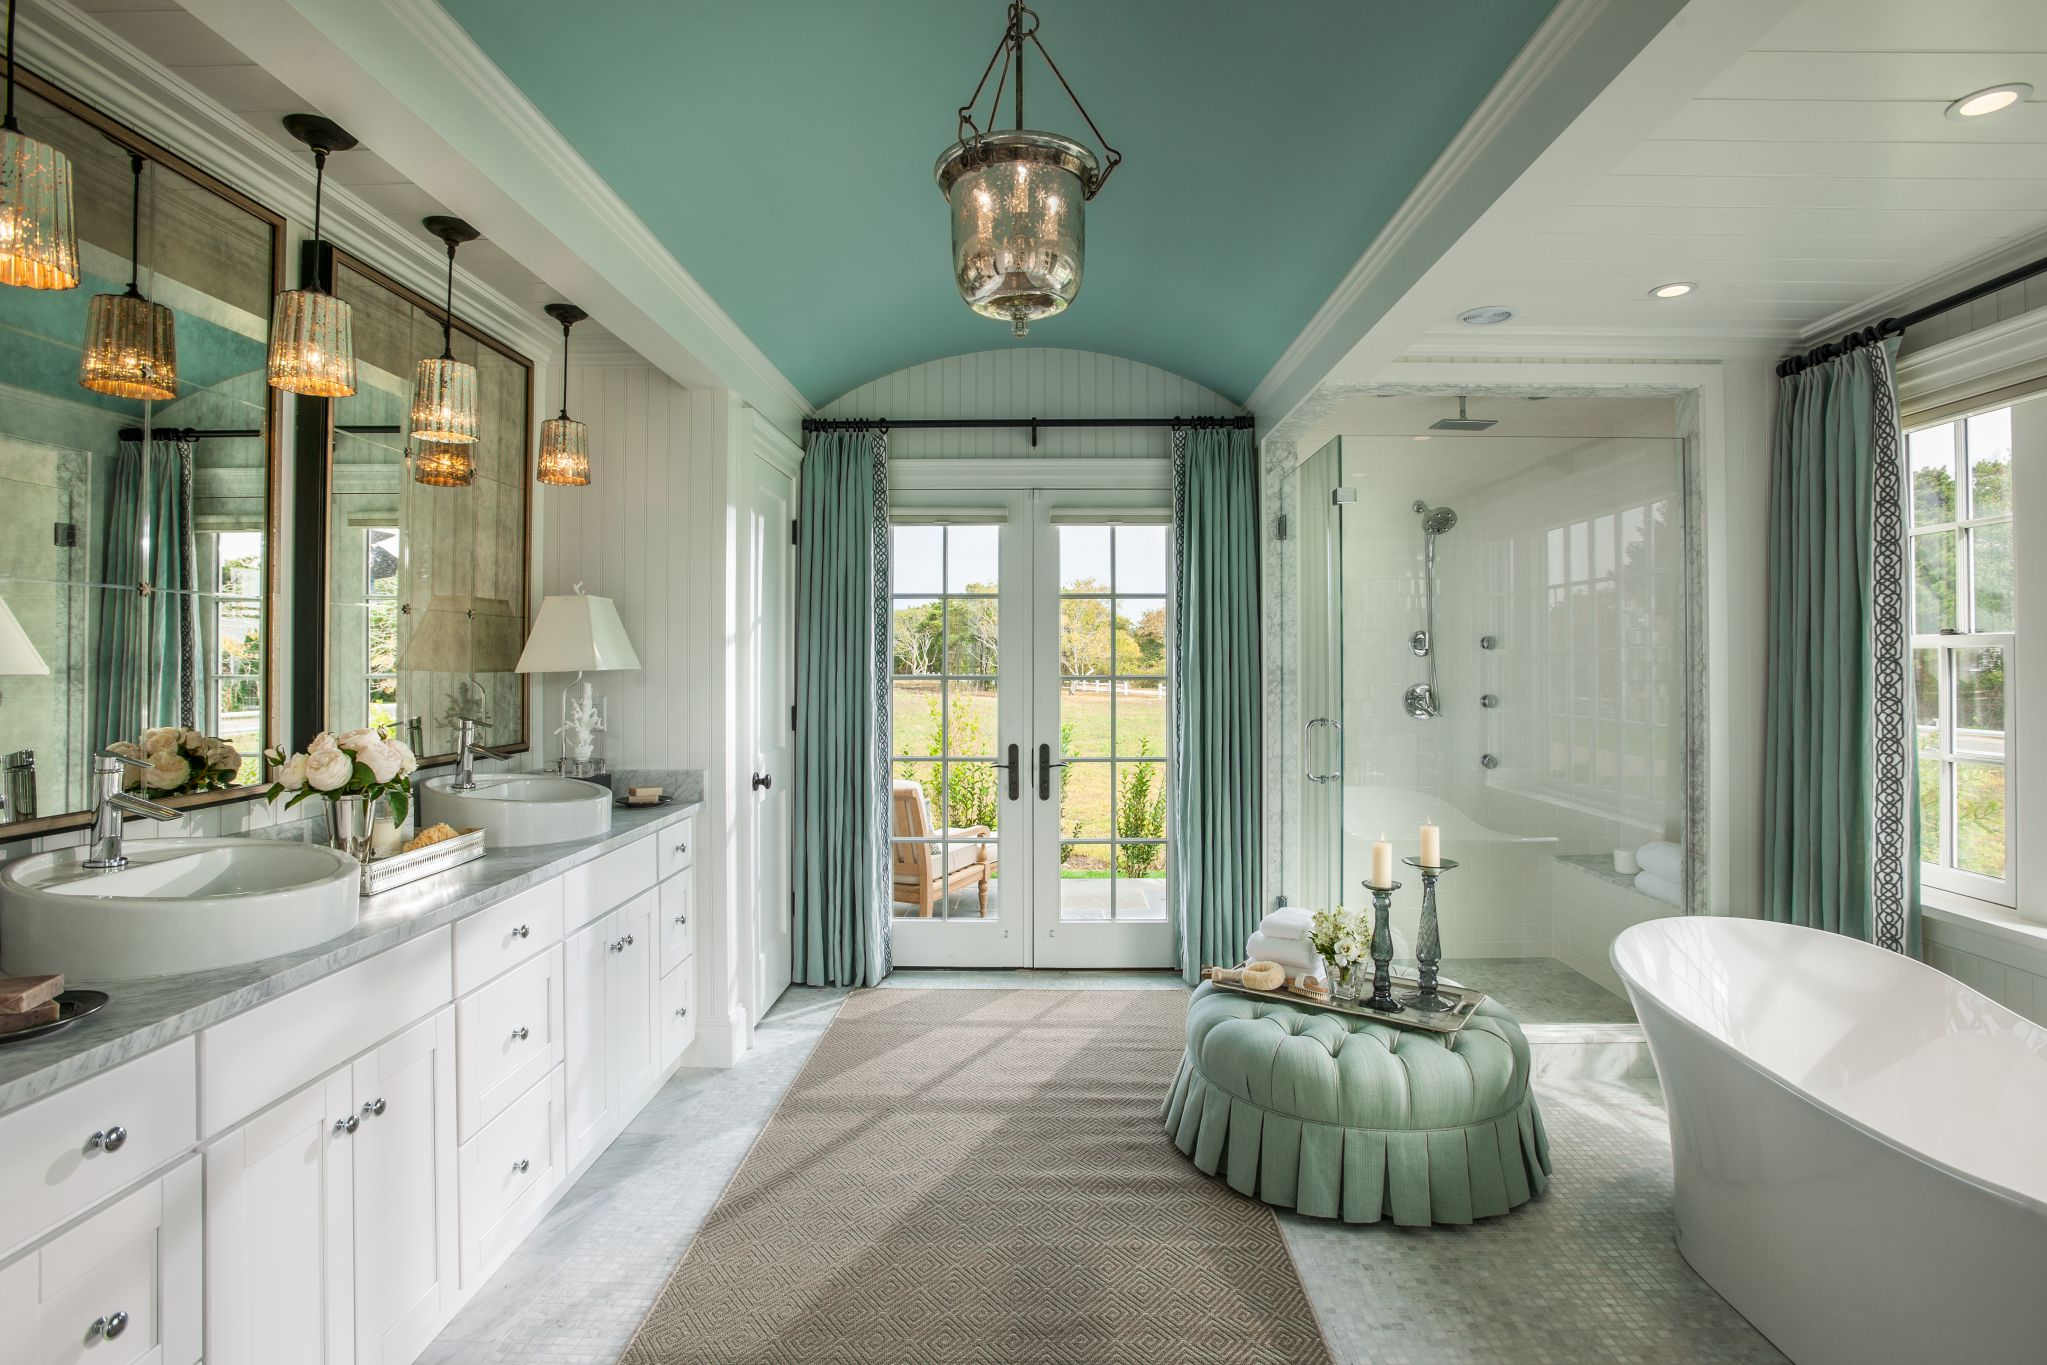 Master bathroom designs 2016 - Fancy Cabinet Under Pendant Lighting For Good Master Bathroom Designs